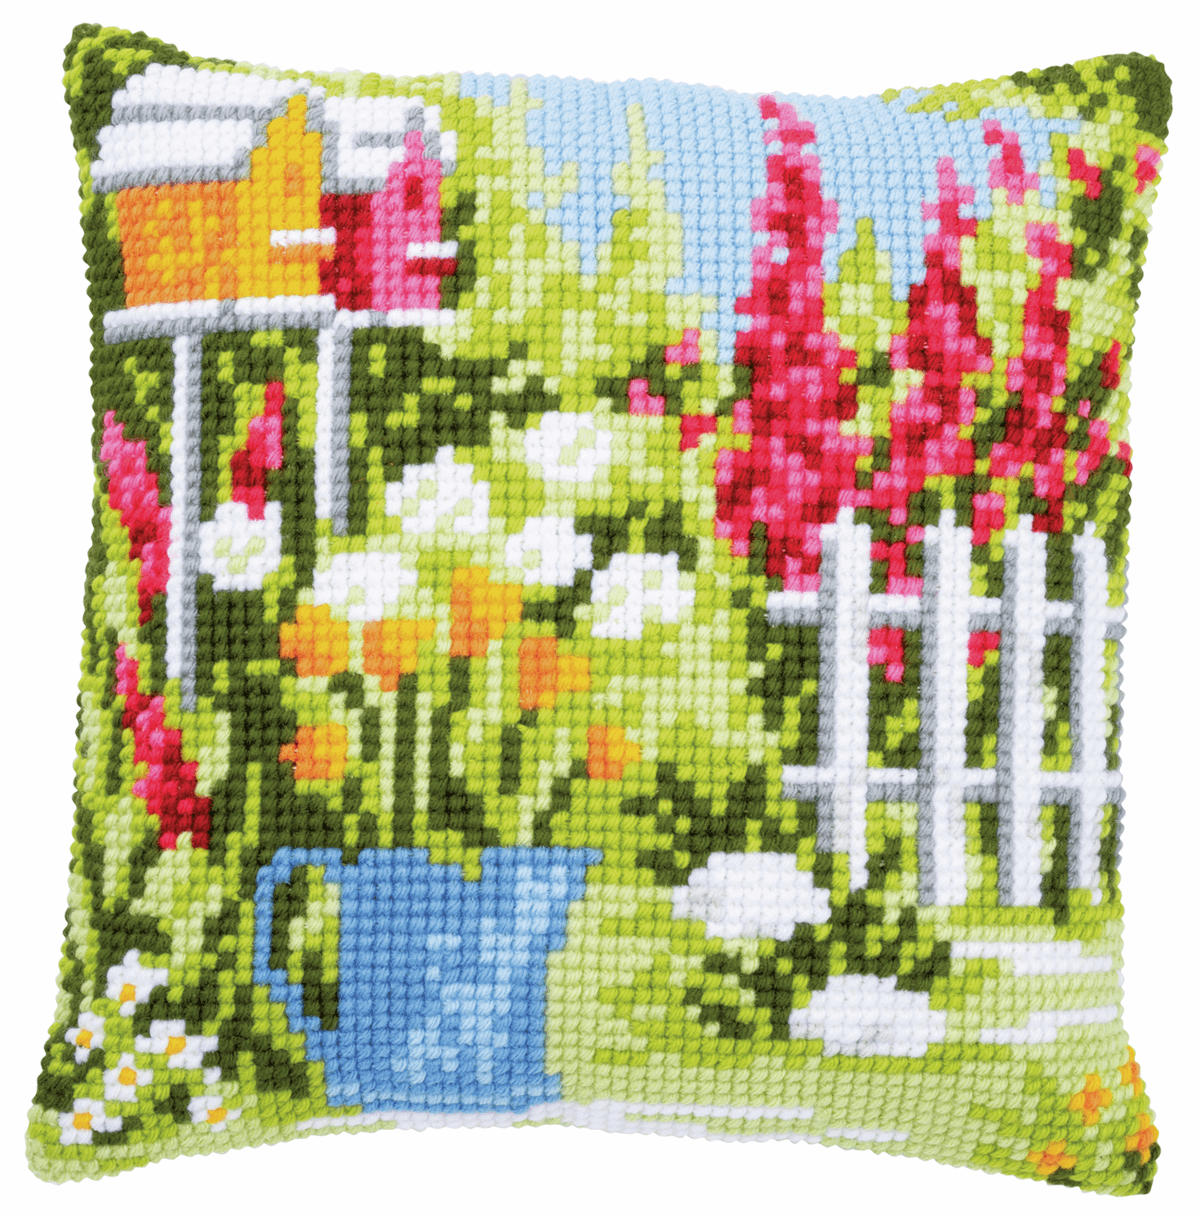 Picture of Cross Stitch Kit: Cushion: In My Garden